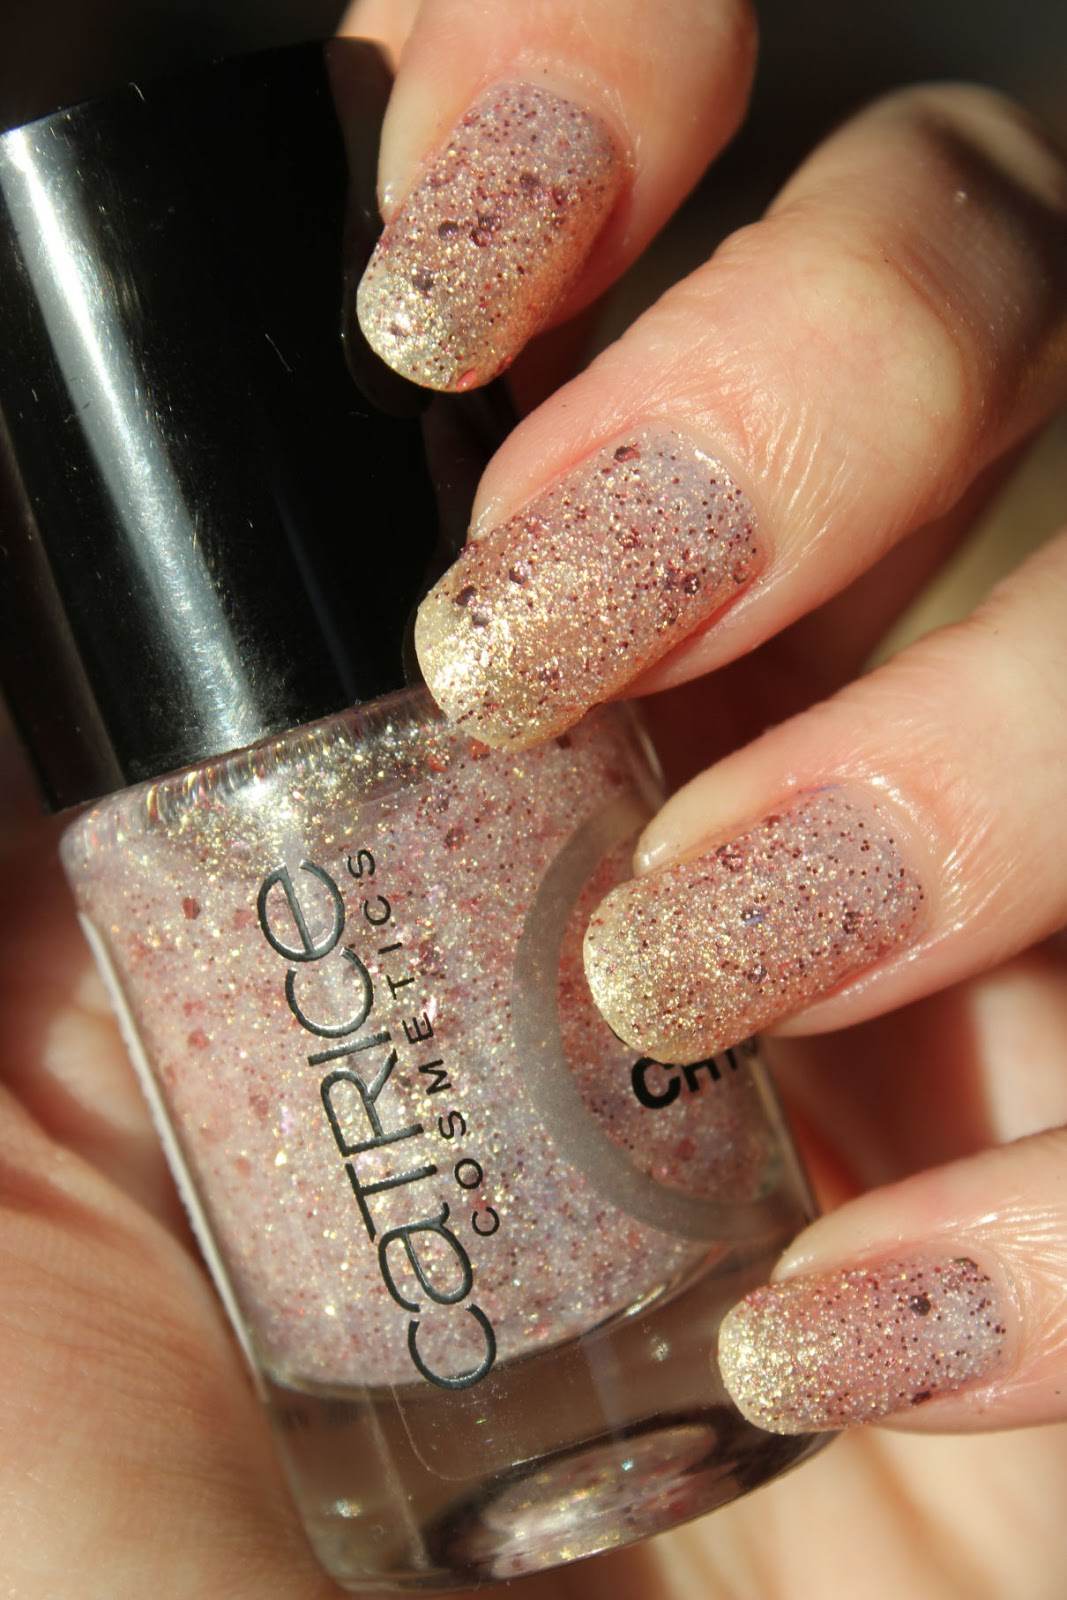 http://lacquediction.blogspot.de/2014/01/catrice-crushed-crystals-04-oyster.html